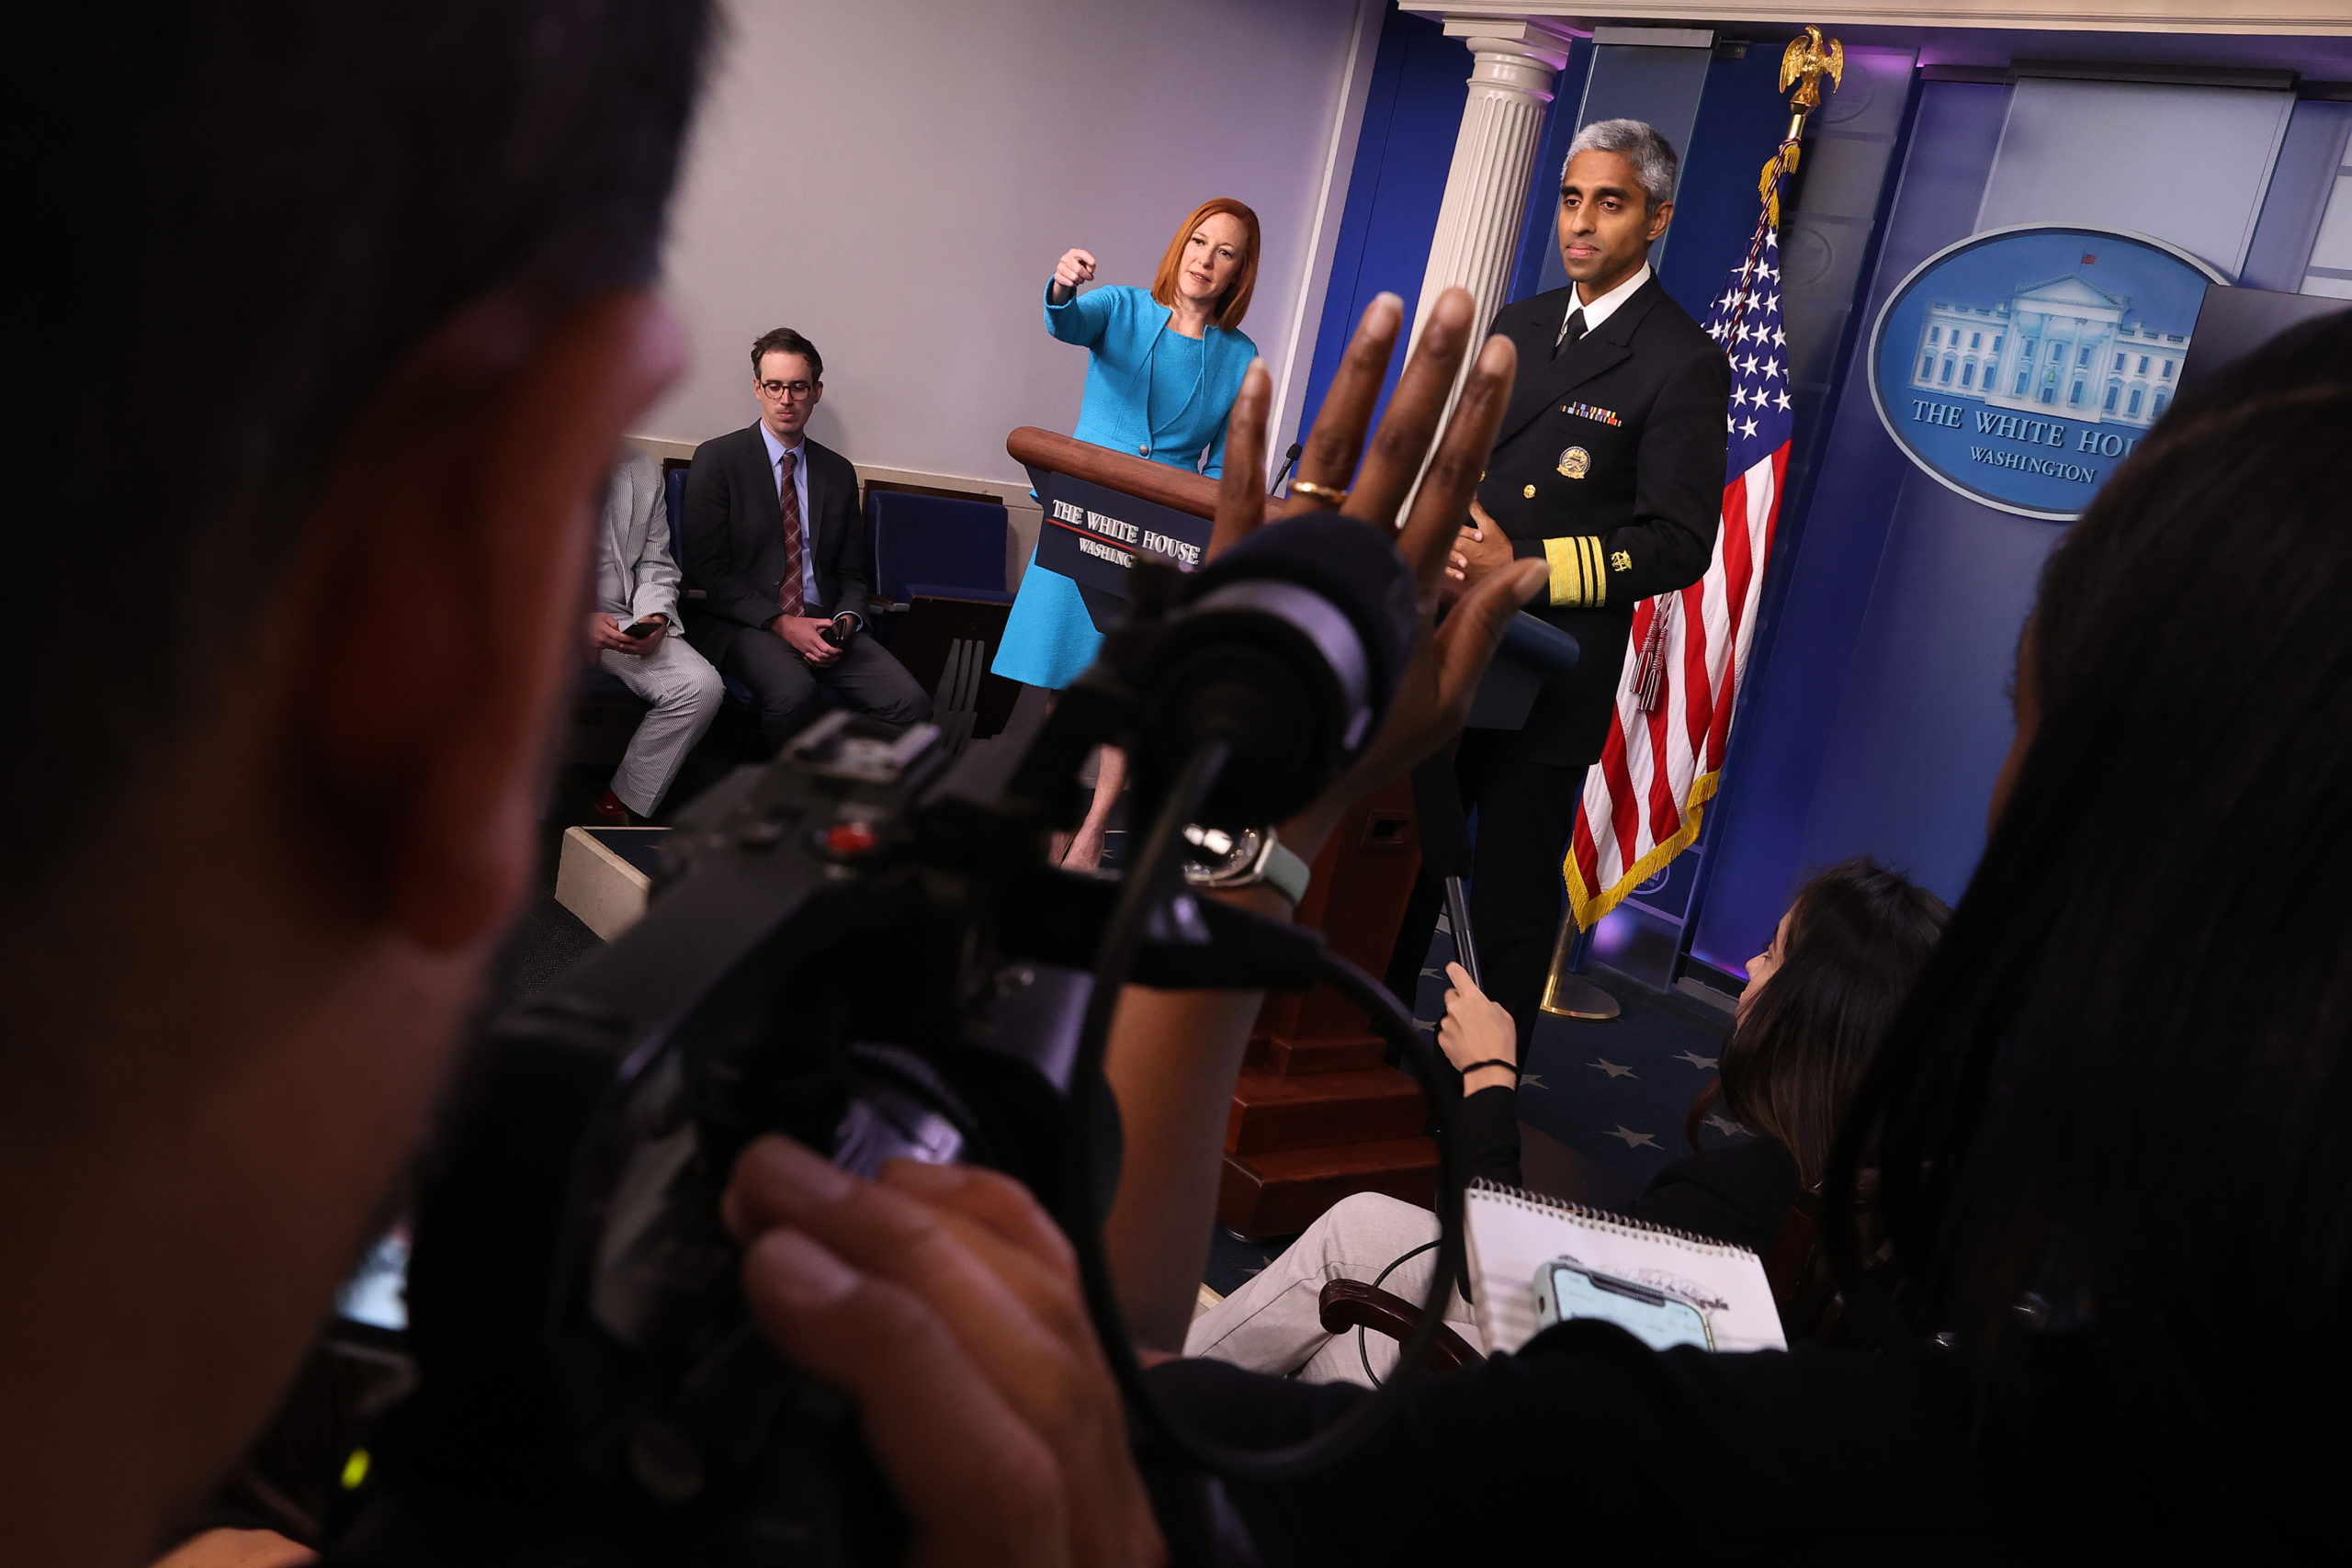 U.S. Surgeon General Vivek Murthy and White House Press Secretary Jen Psaki talk to reporters about the Surgeon's General's advisory titled, 'Confronting Health Misinformation.' (Photo by Chip Somodevilla/Getty Images)